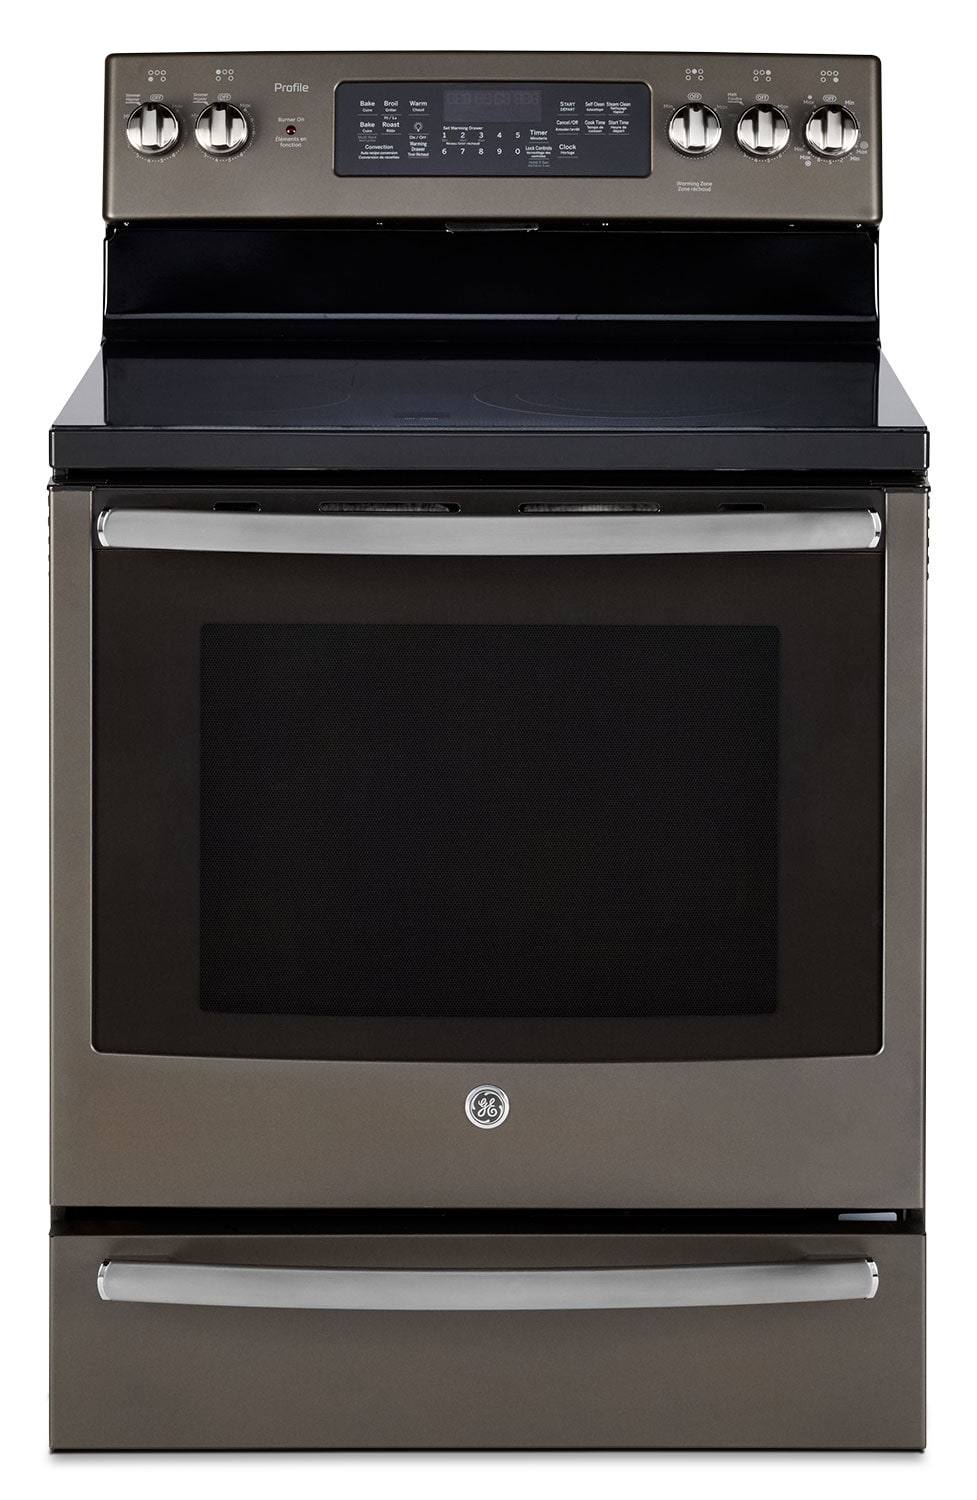 GE 6.2 Cu. Ft. Freestanding Electric Convection Range – PCB940EKES